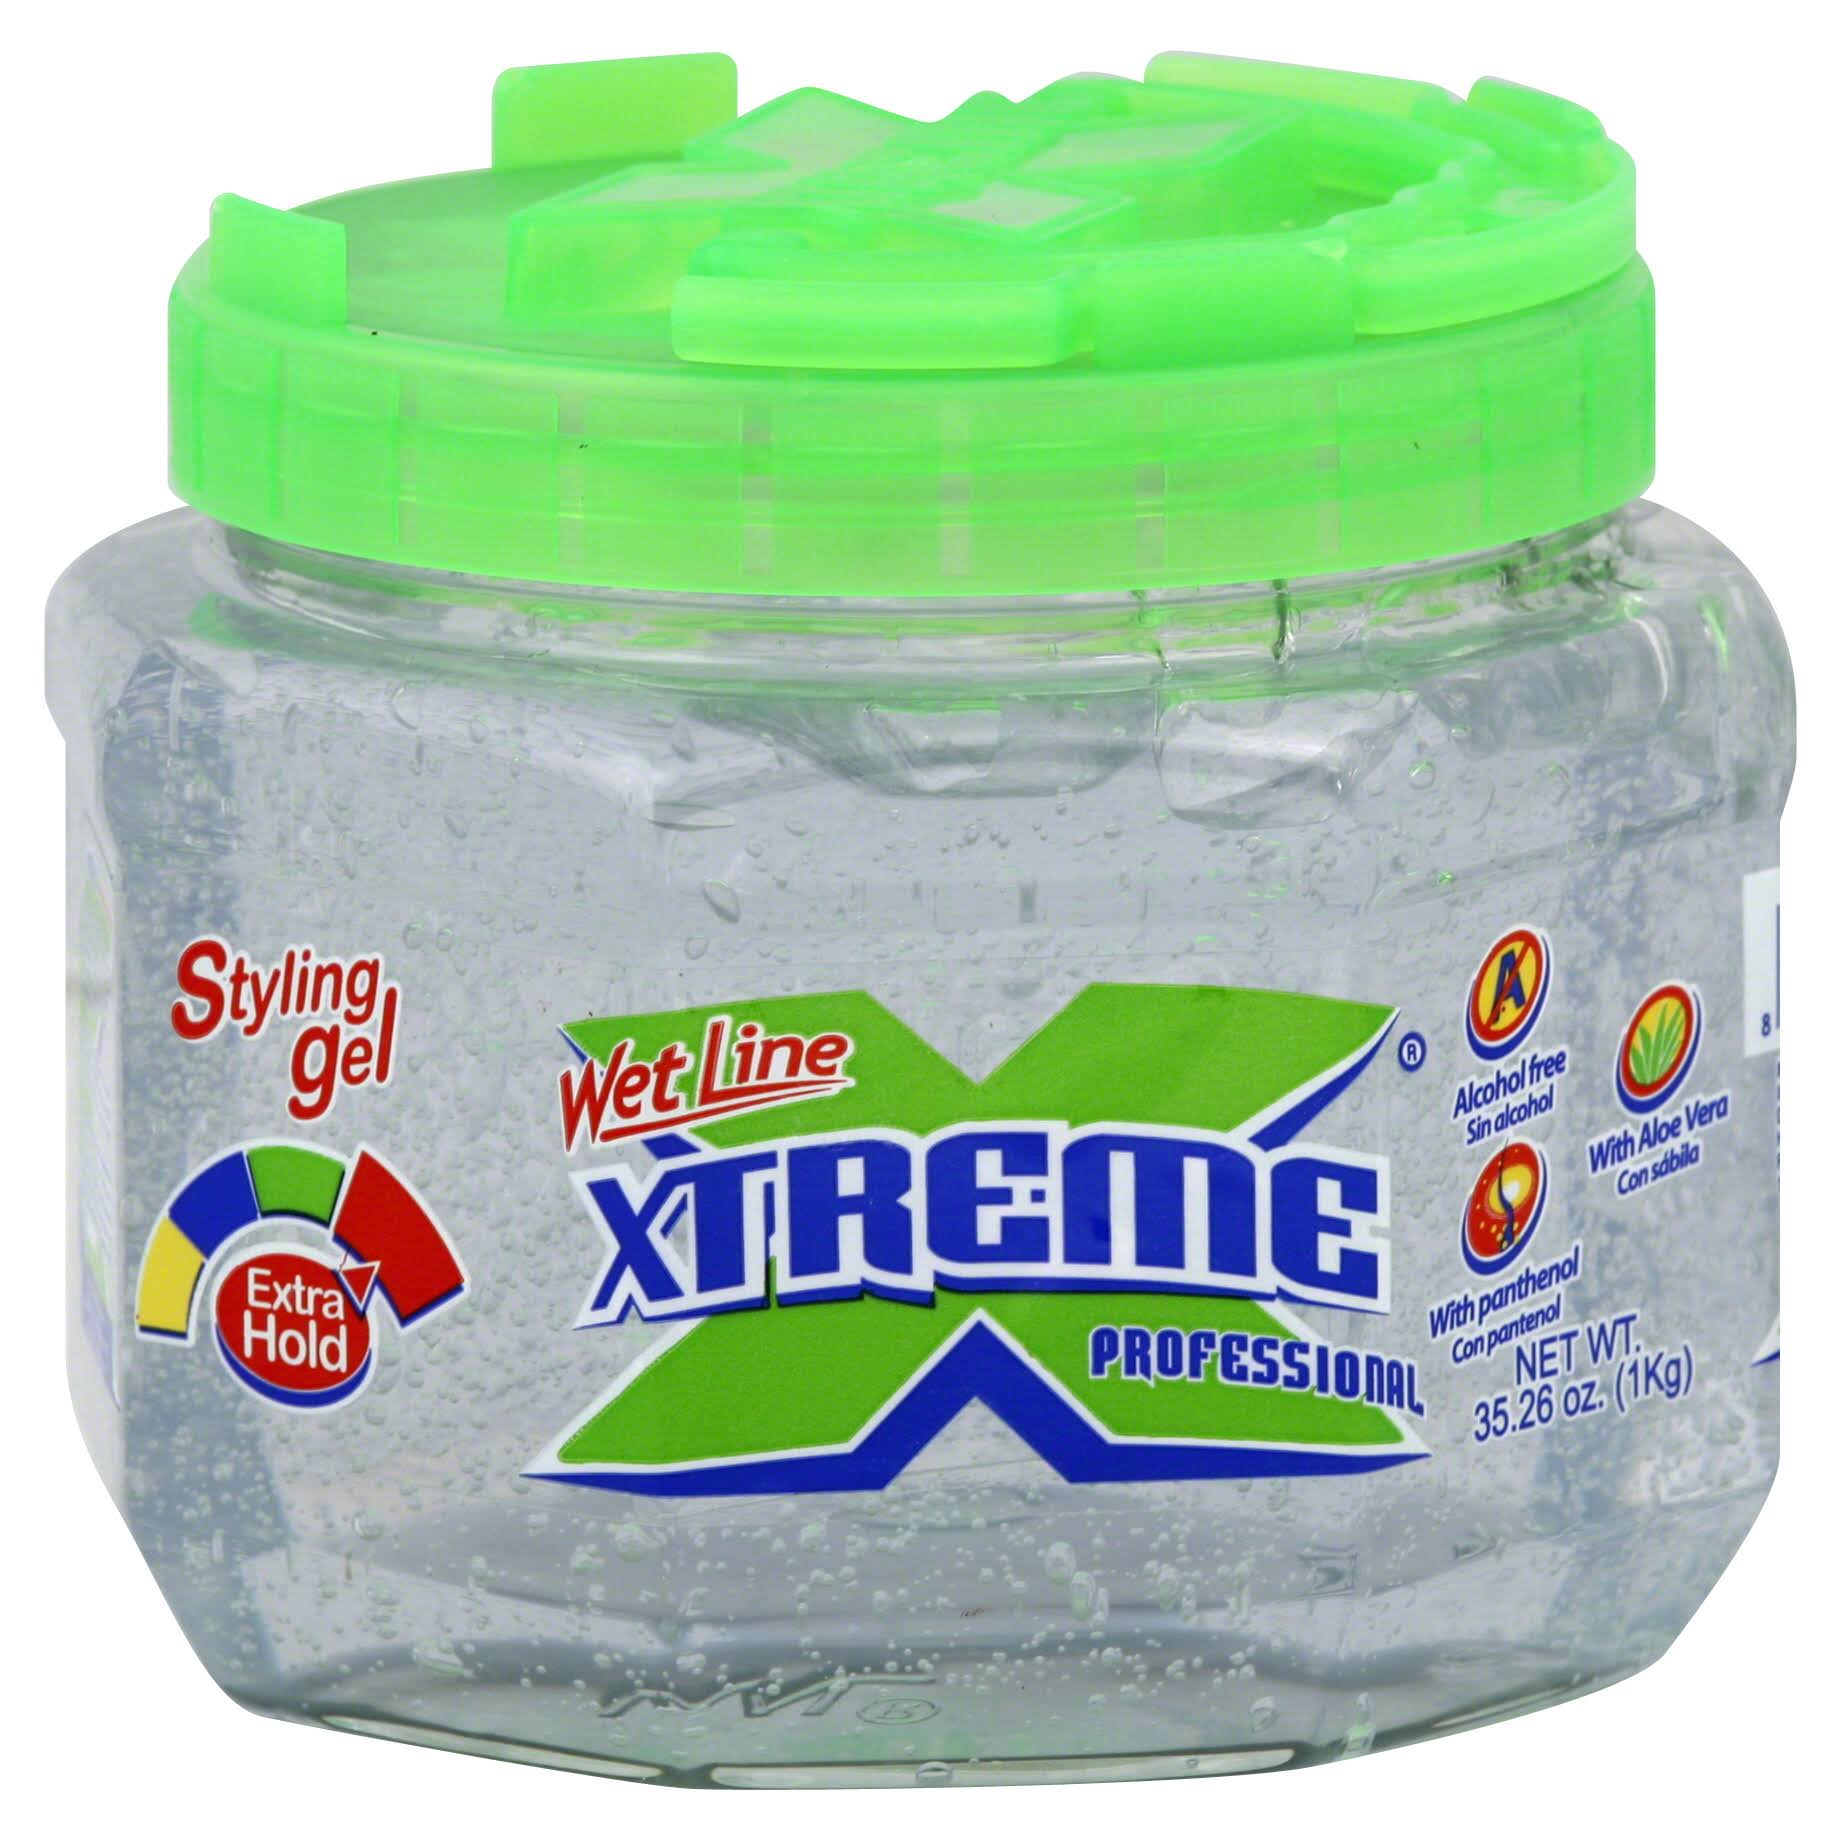 Wet Line Xtreme Professional Styling Gel - Extra Hold, Clear, 35.26oz